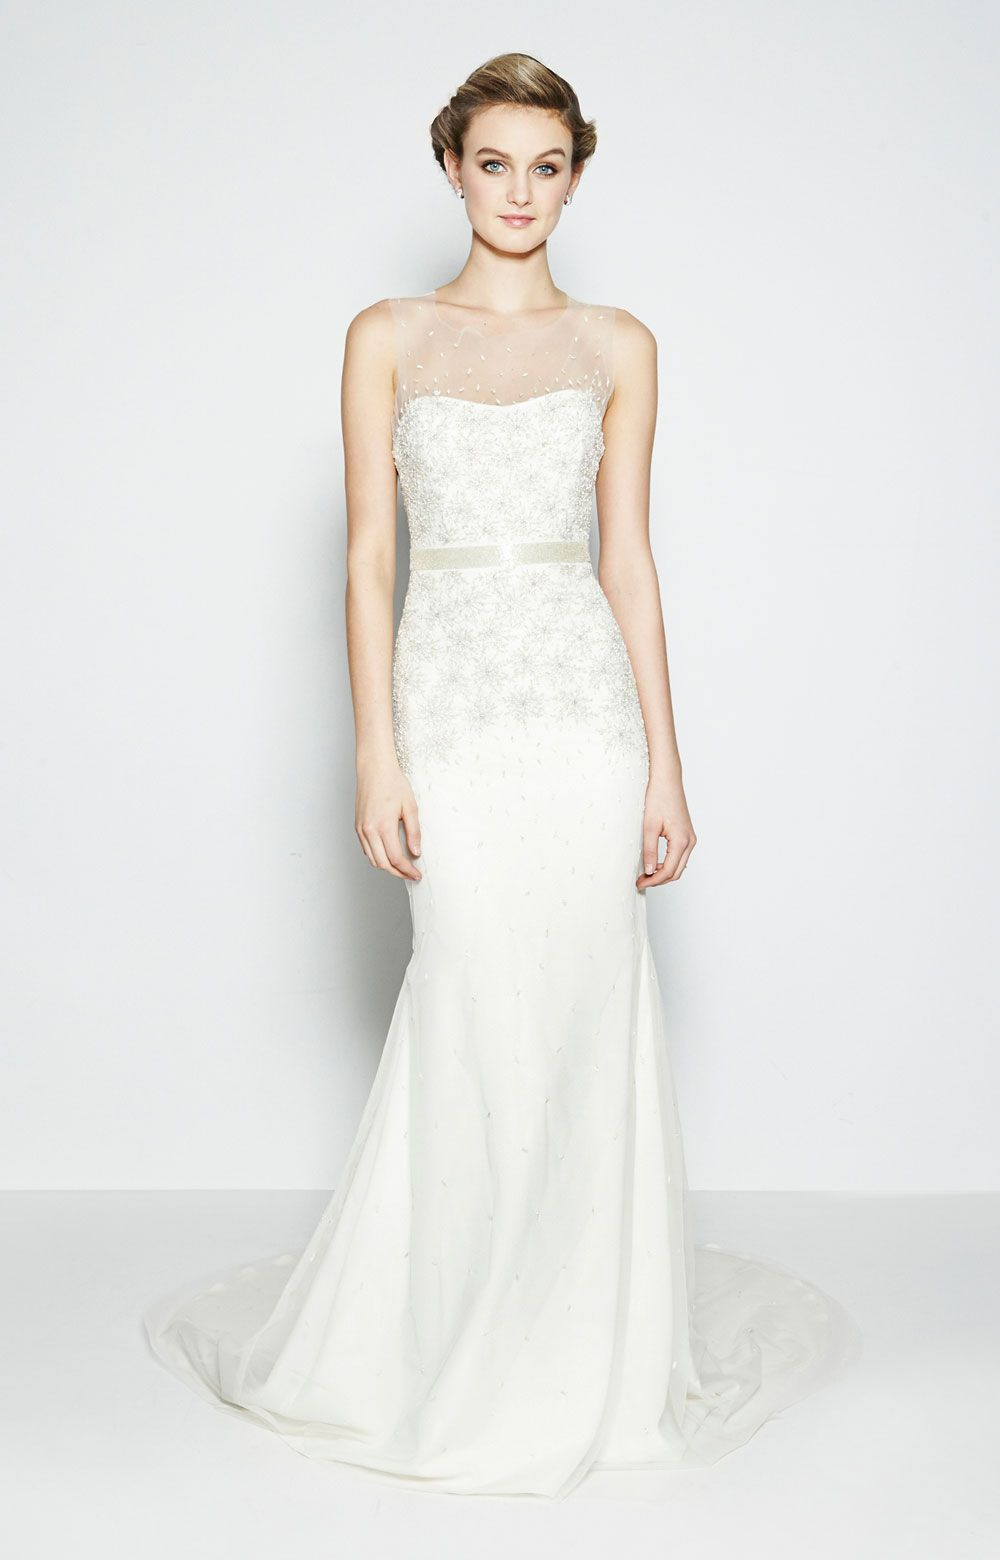 New Arrivals | Nicole miller, Nicole miller wedding dresses and ...